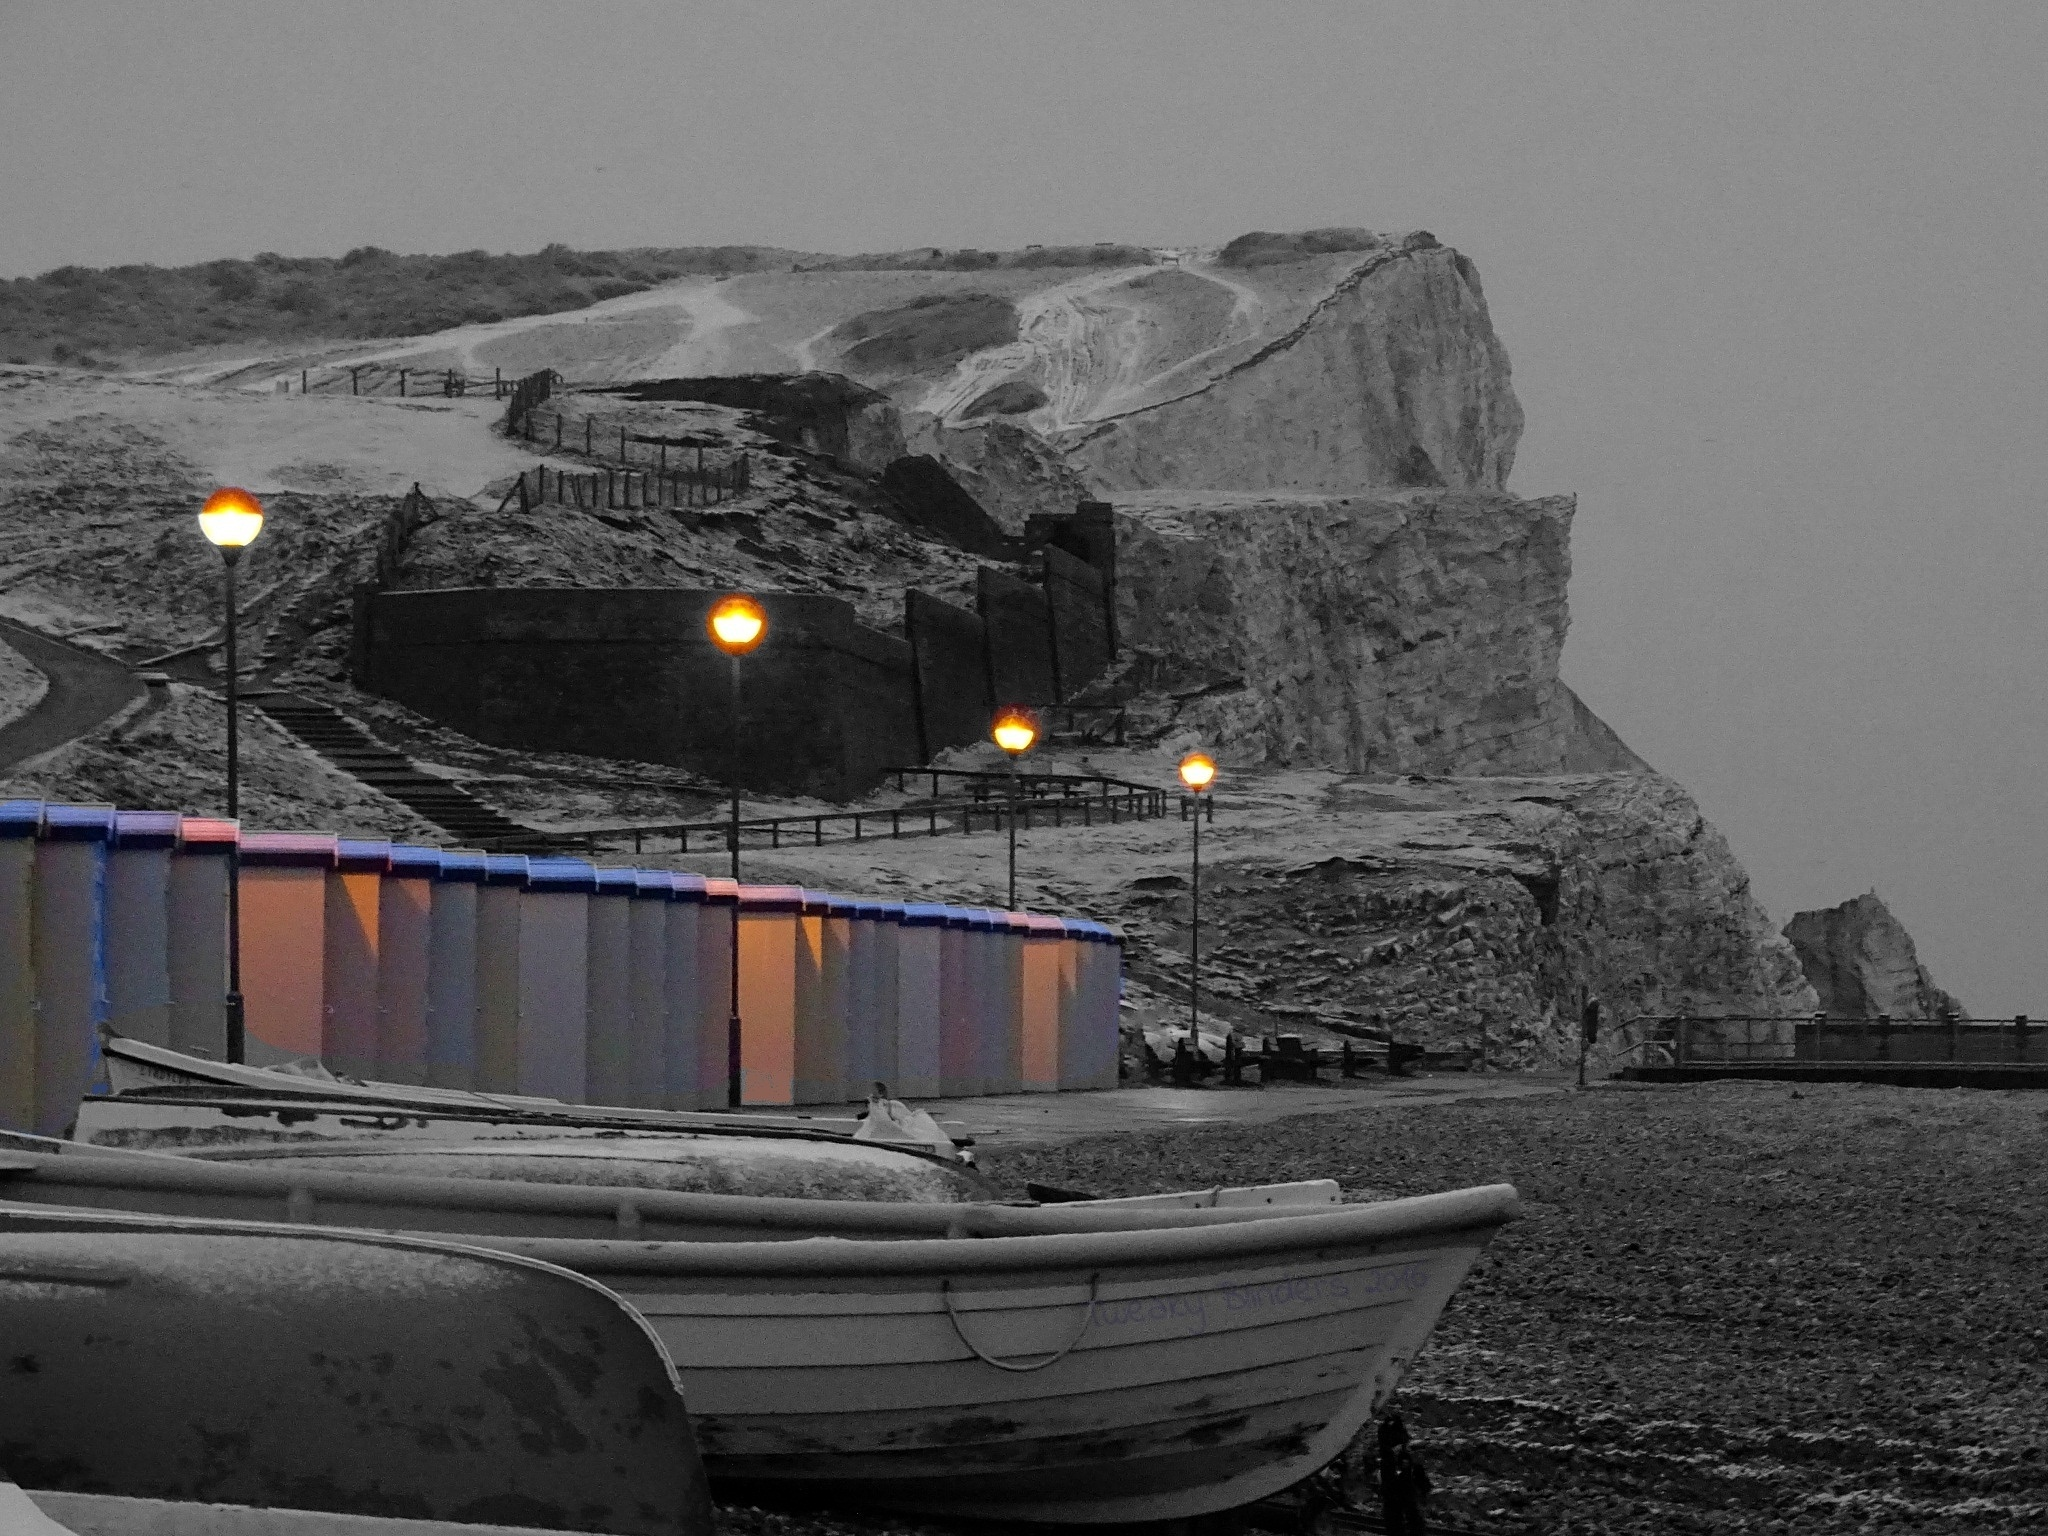 A winter's morning by the sea by Tweaky Blinders